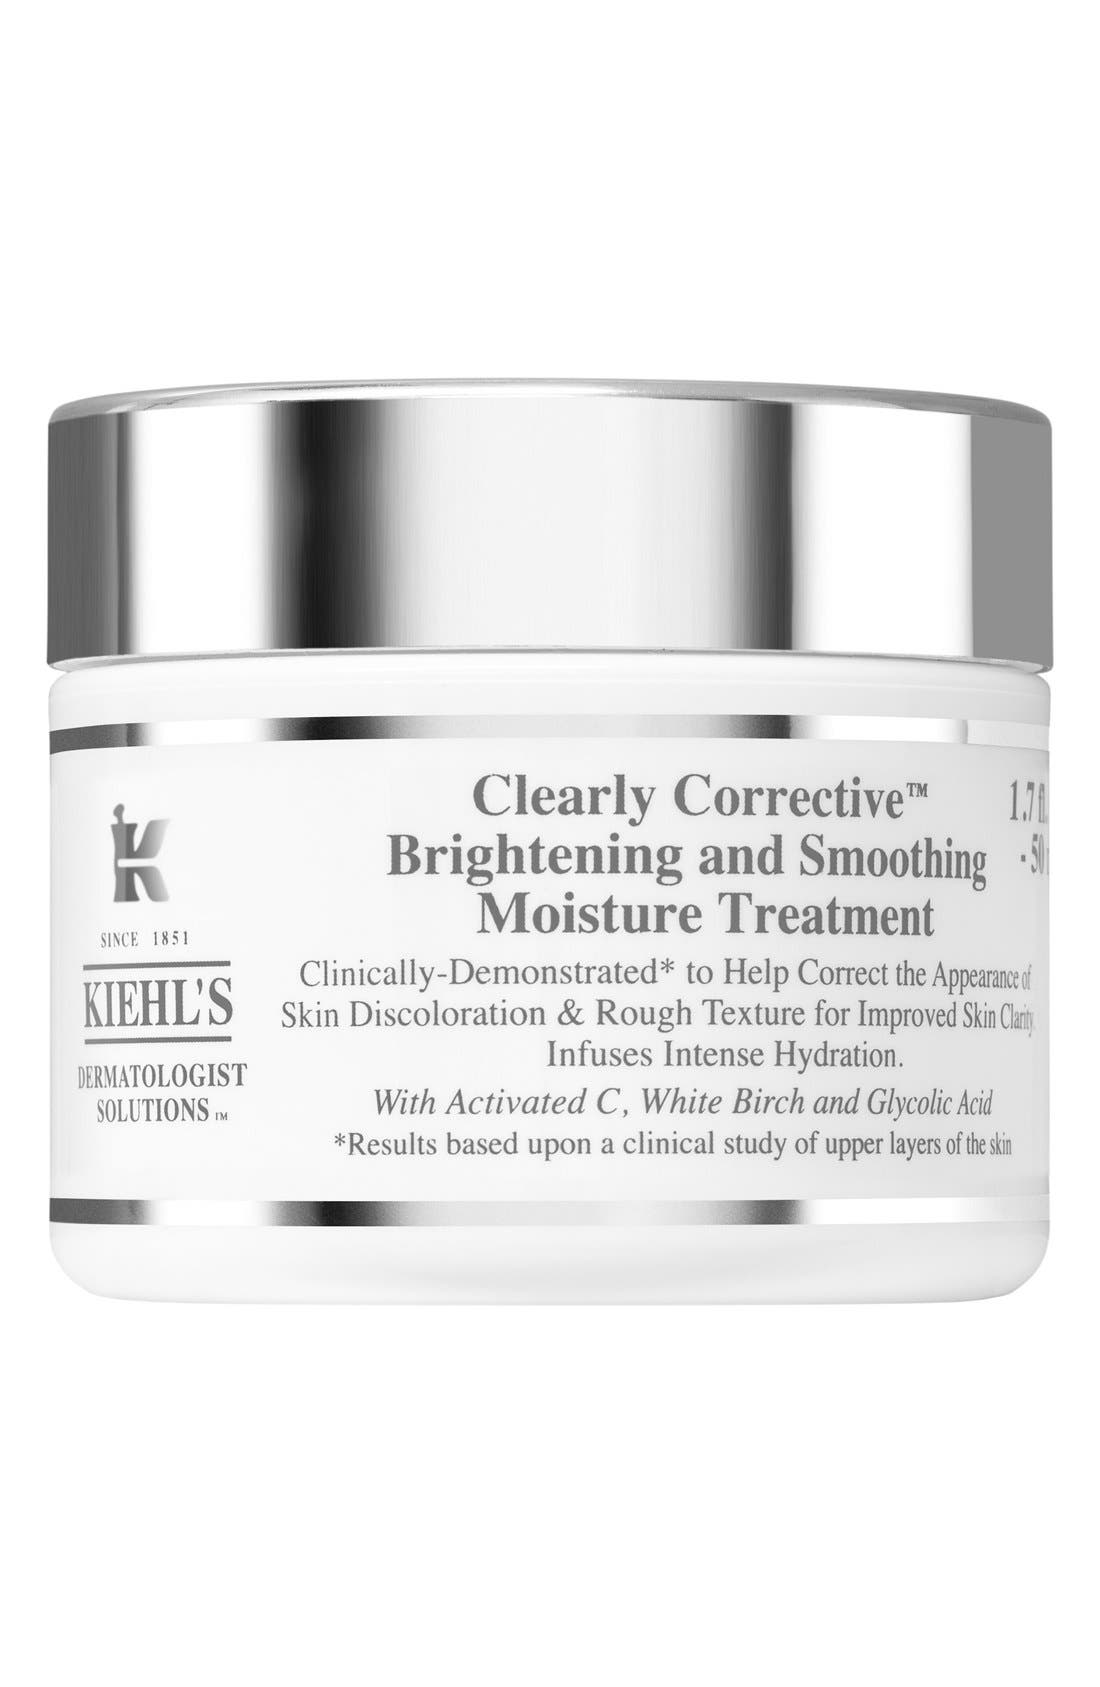 1851 Clearly Corrective(TM) Brightening And Smoothing Treatment Gel Cream